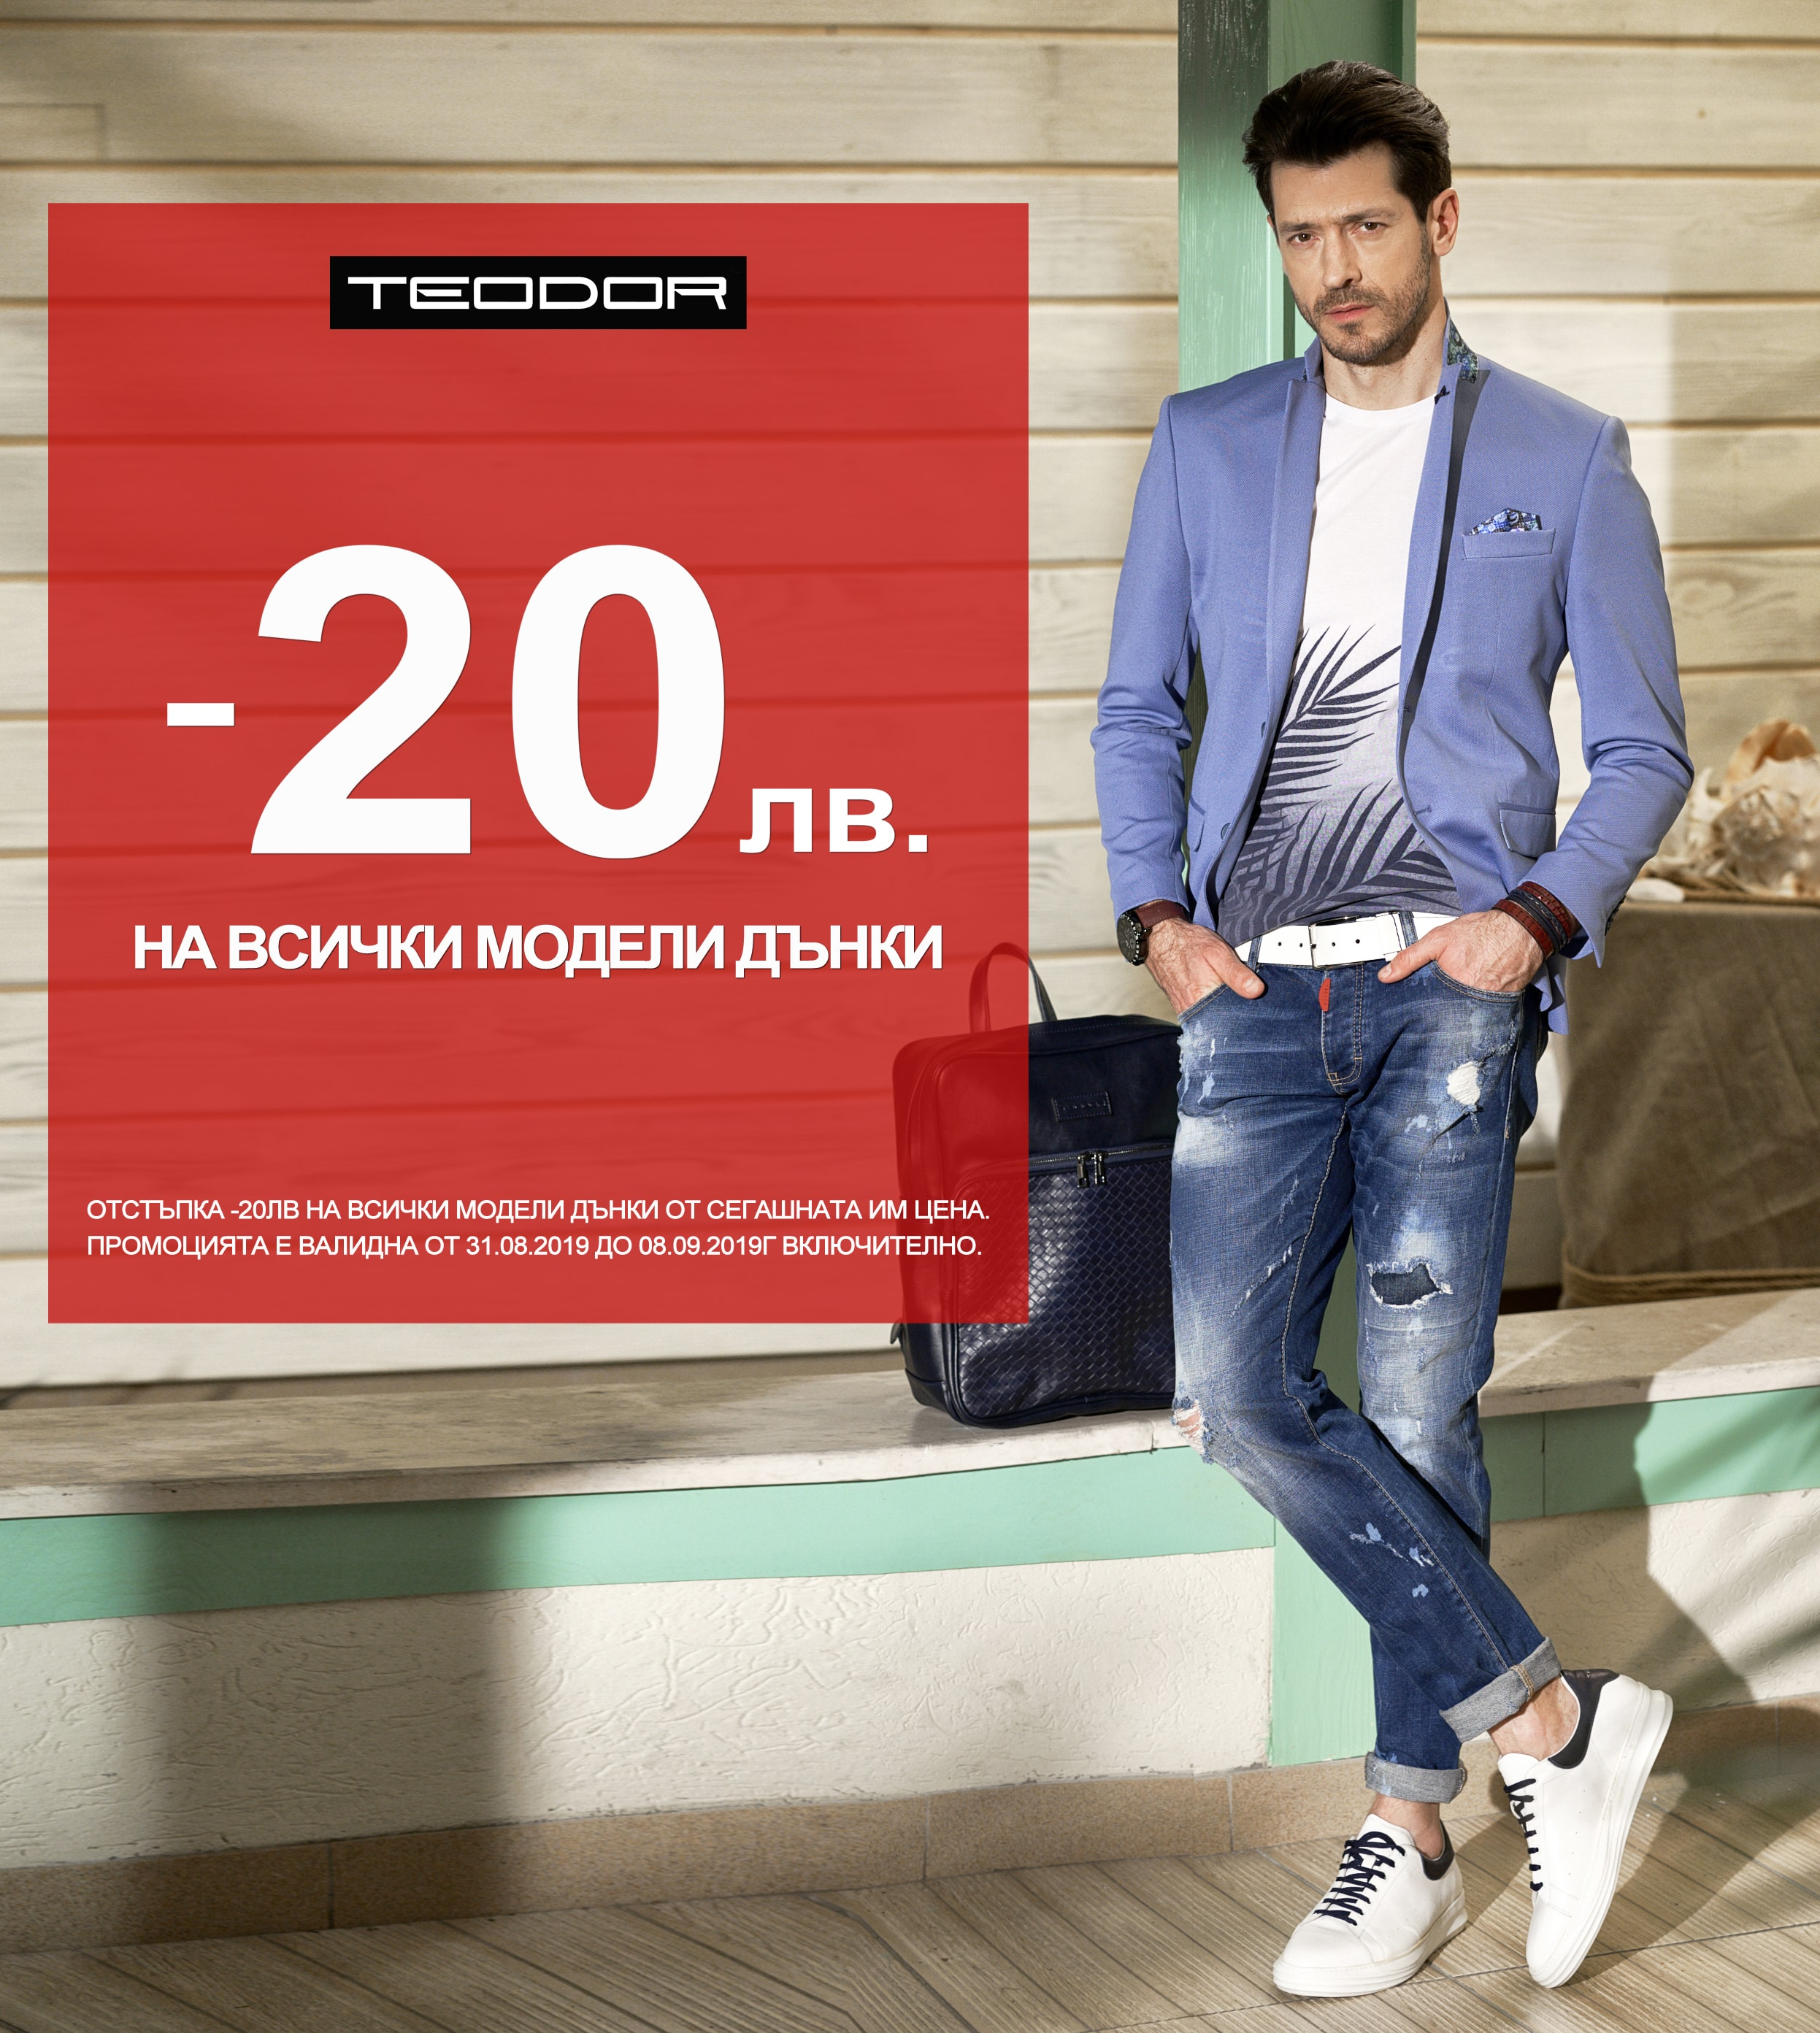 Prepare for the fall with Teodor